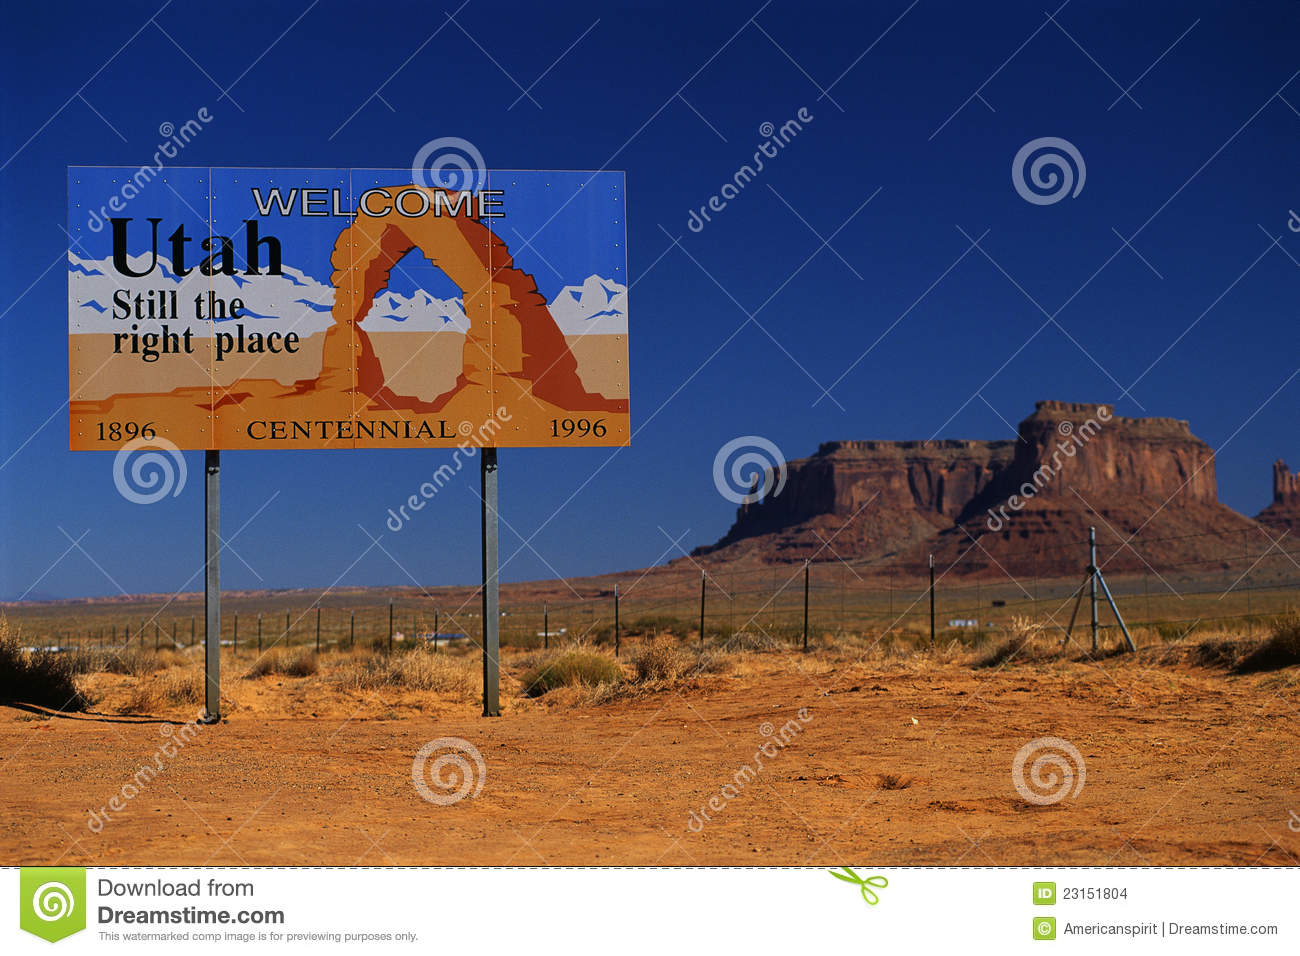 Arches National Park clipart #7, Download drawings